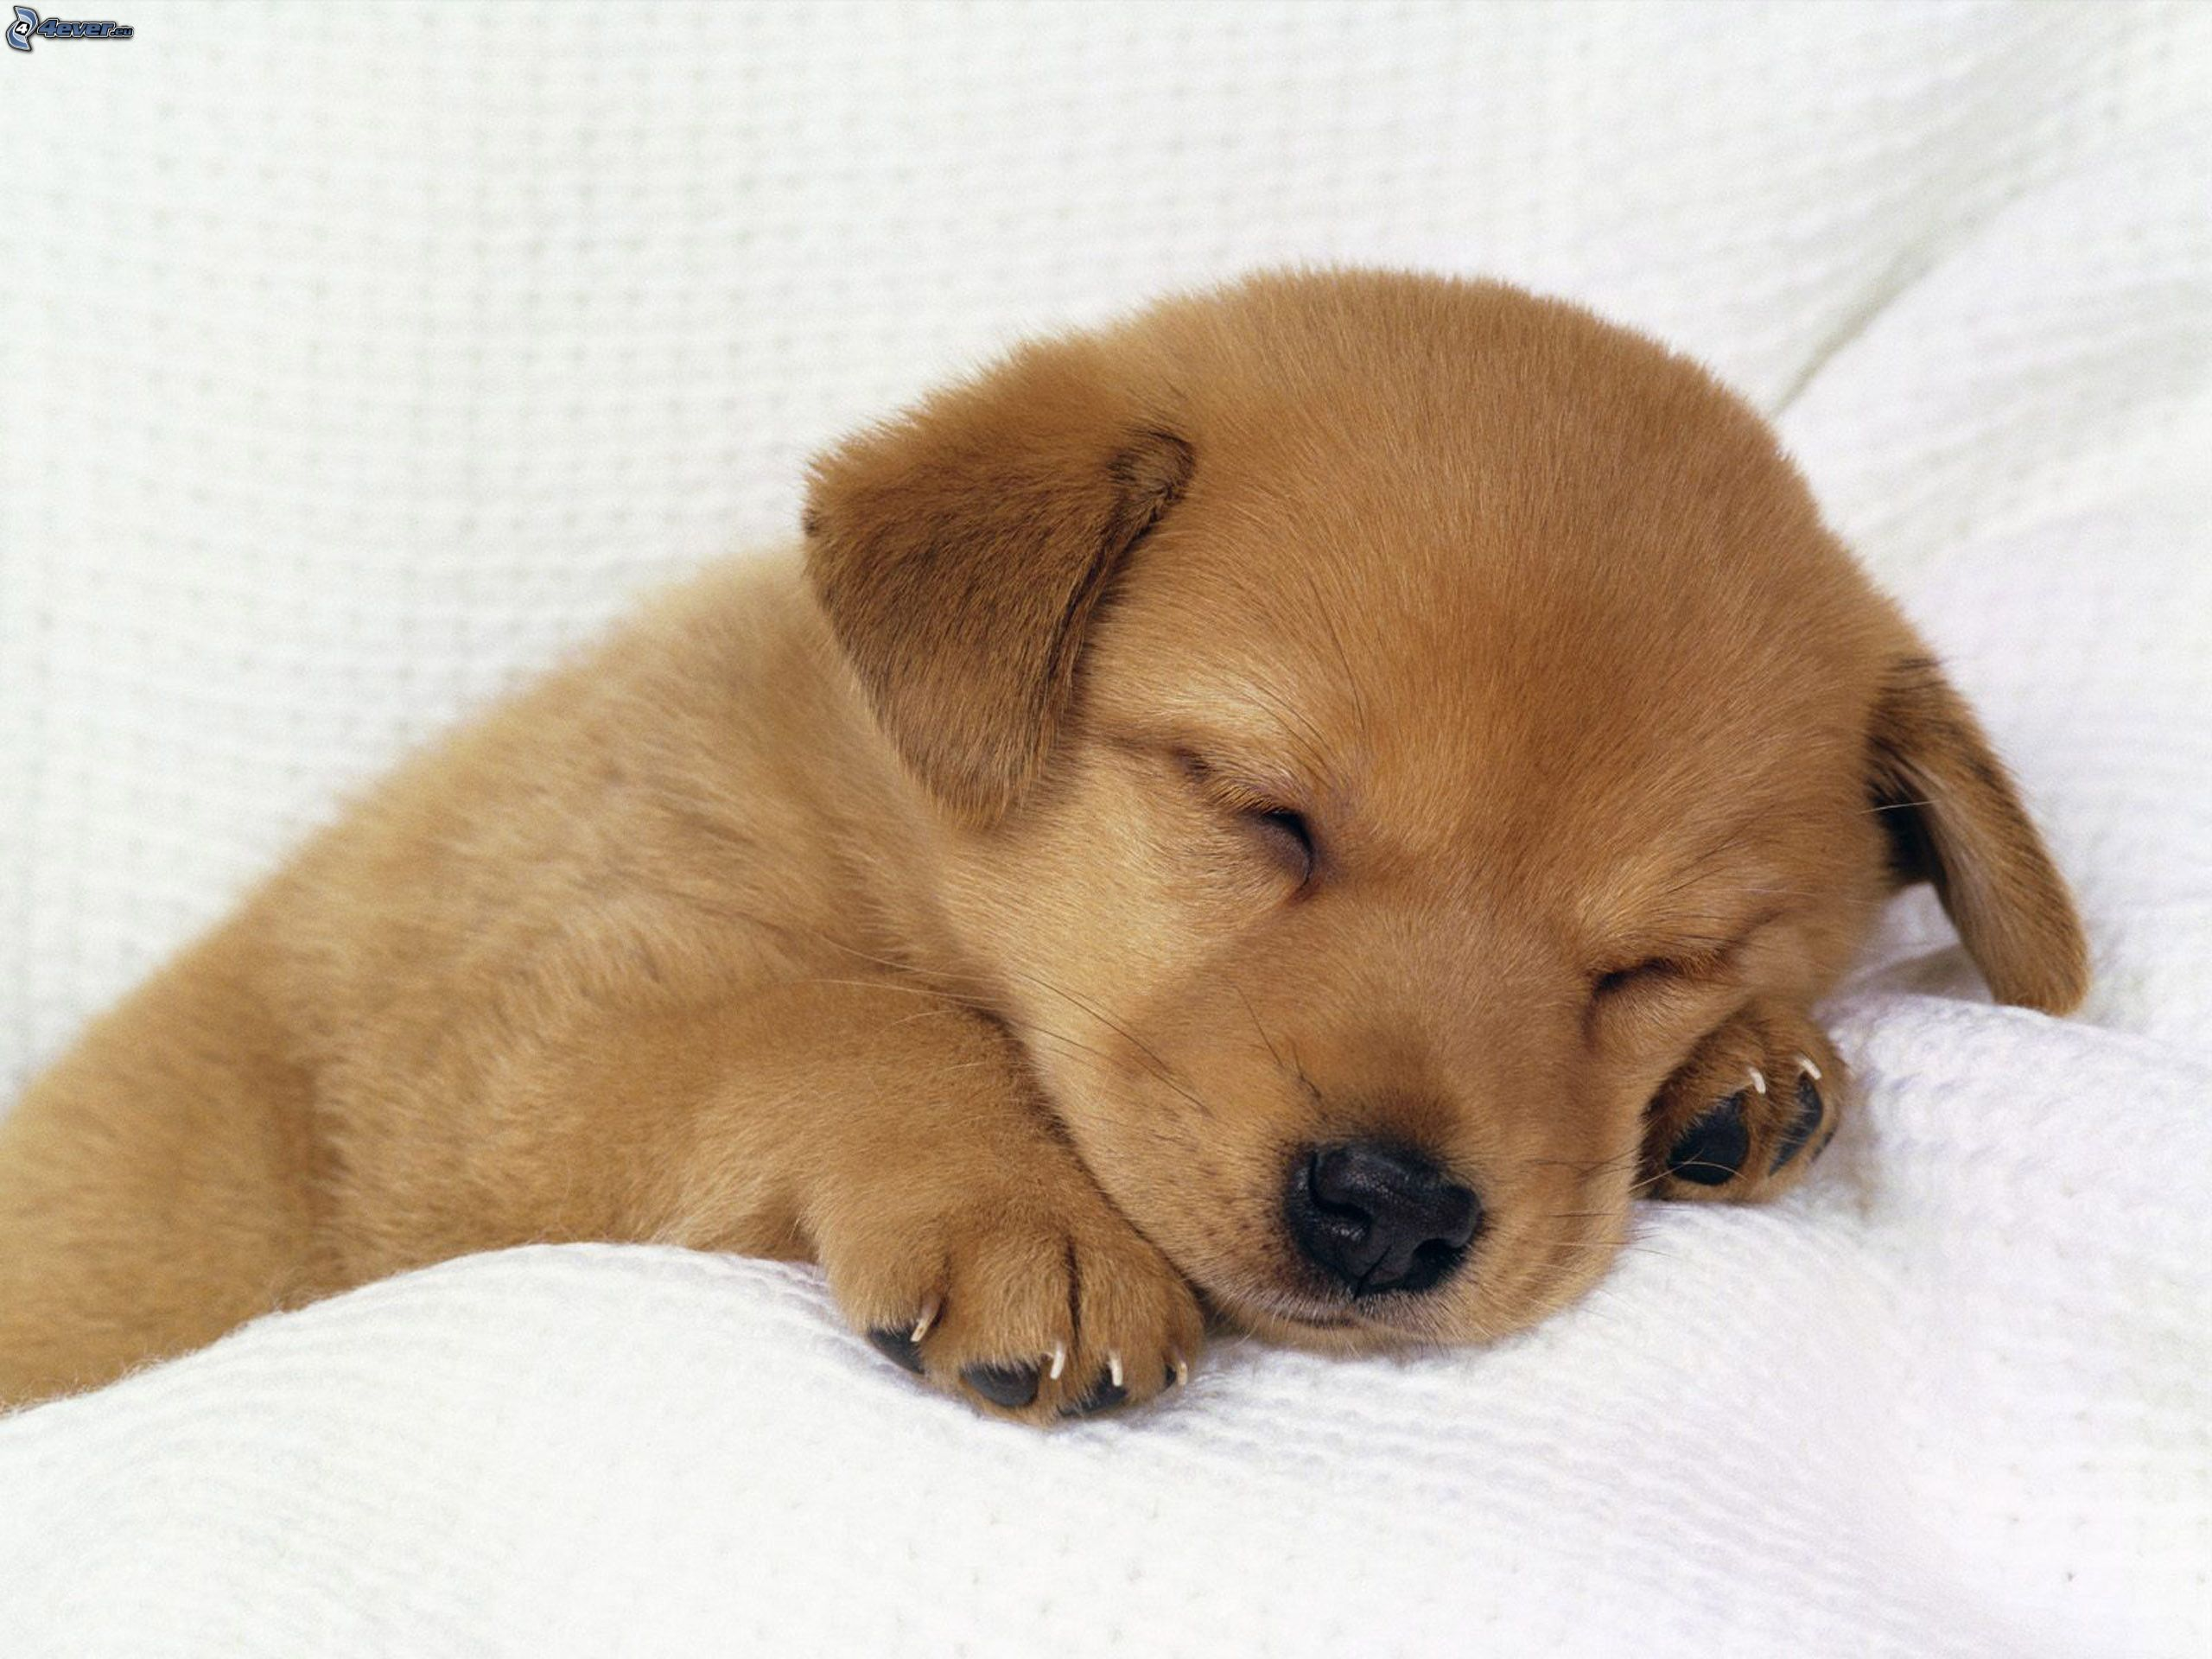 Cute Sleeping Golden Retriever Puppies HD Wallpaper, Background Images